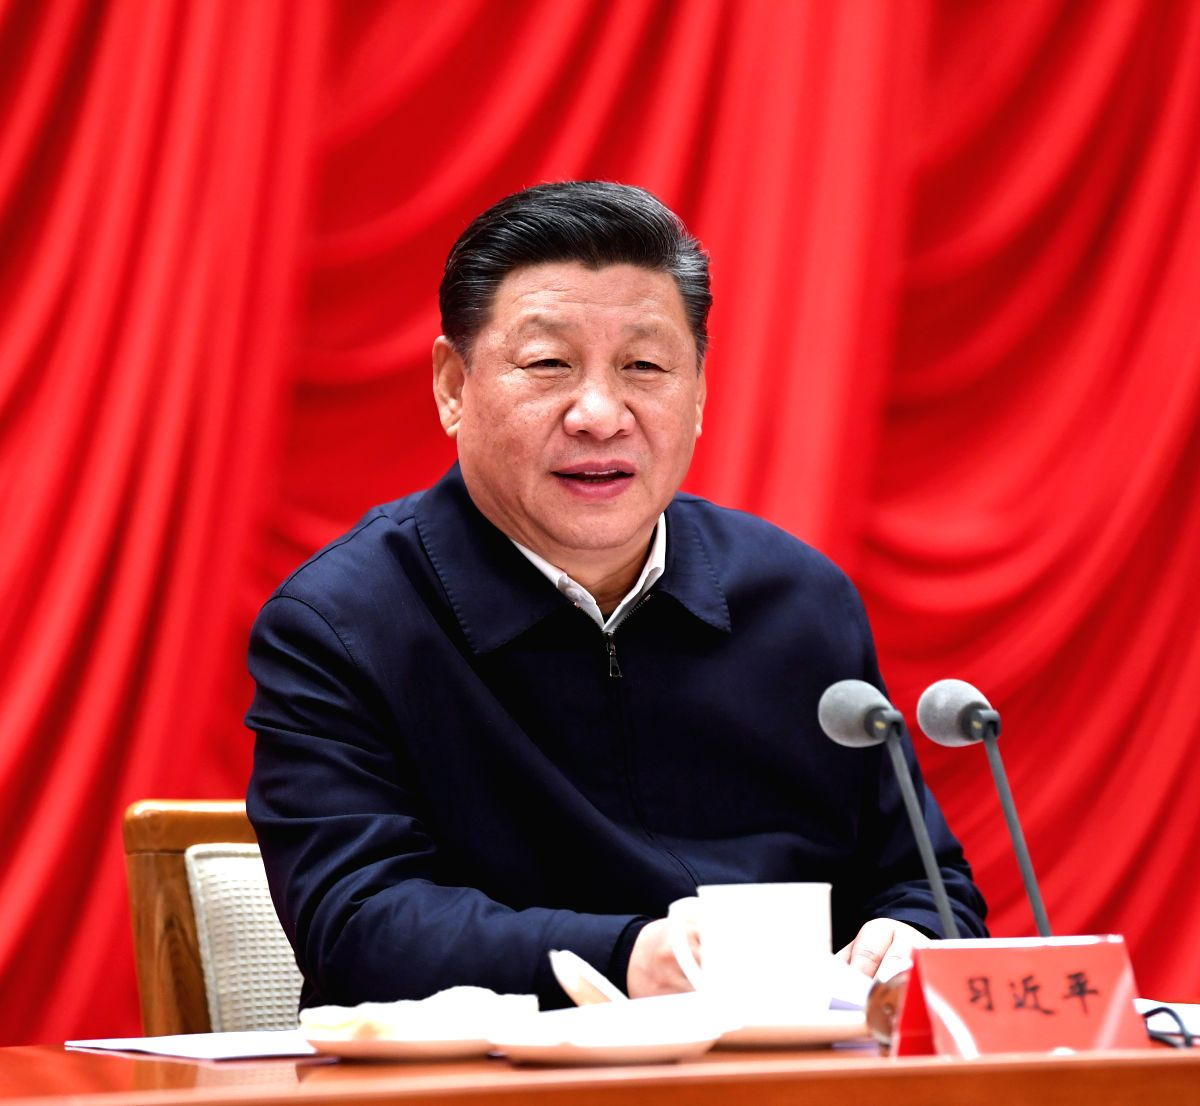 BEIJING, Jan. 21, 2019 (Xinhua) -- Chinese President Xi Jinping, also general secretary of the Communist Party of China (CPC) Central Committee and chairman of the Central Military Commission, addresses the opening ceremony of a study session at the